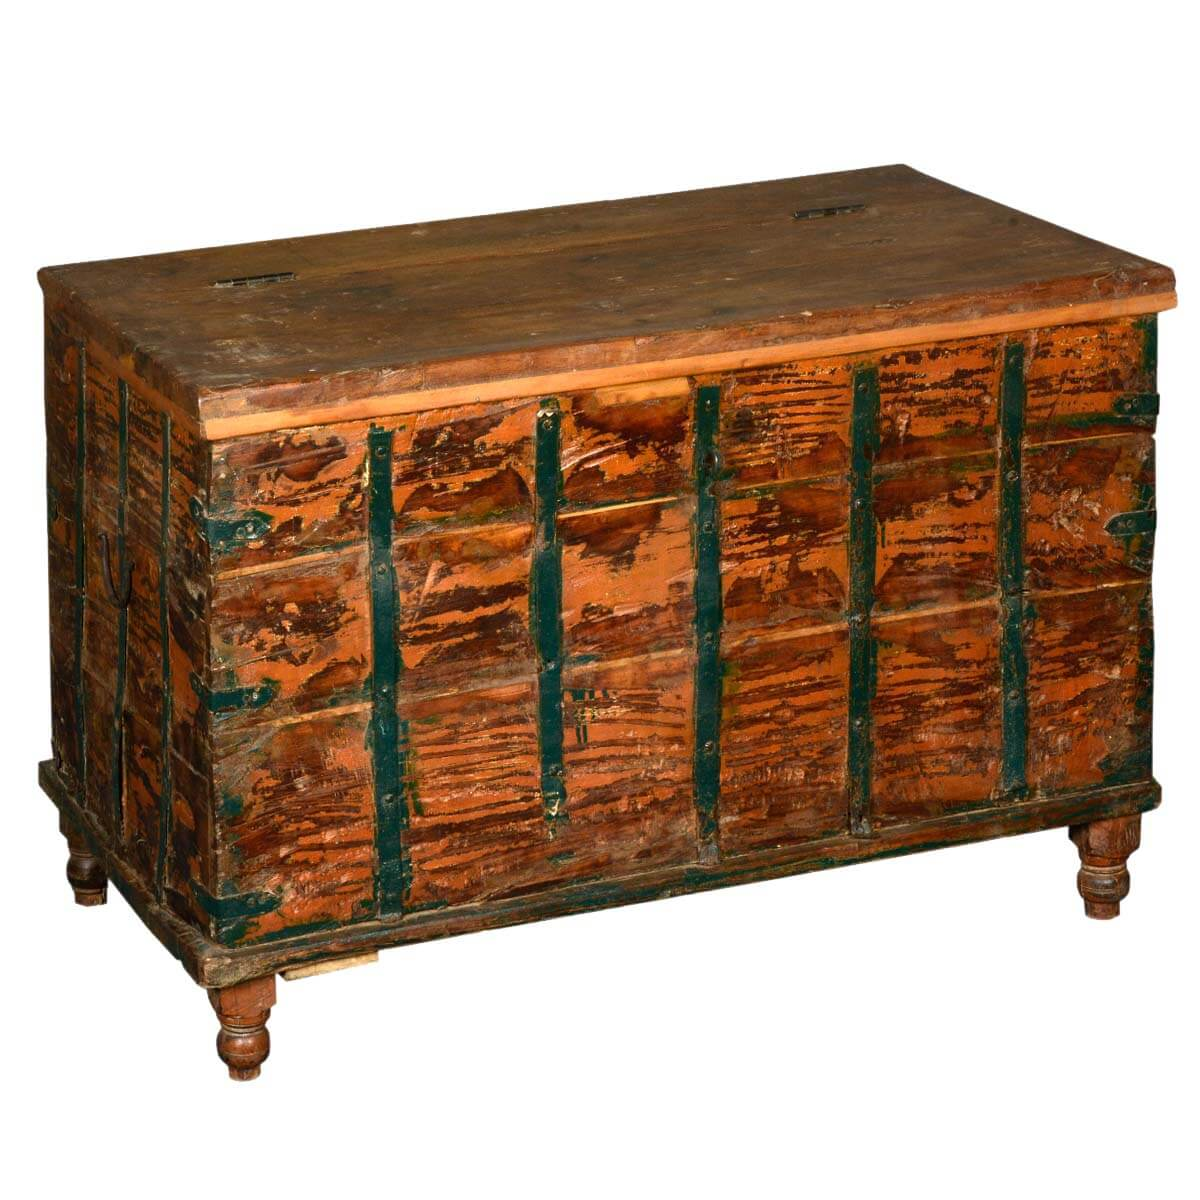 Reclaimed Wood Large Kokanee Blanket Storage Iron Chest Furniture